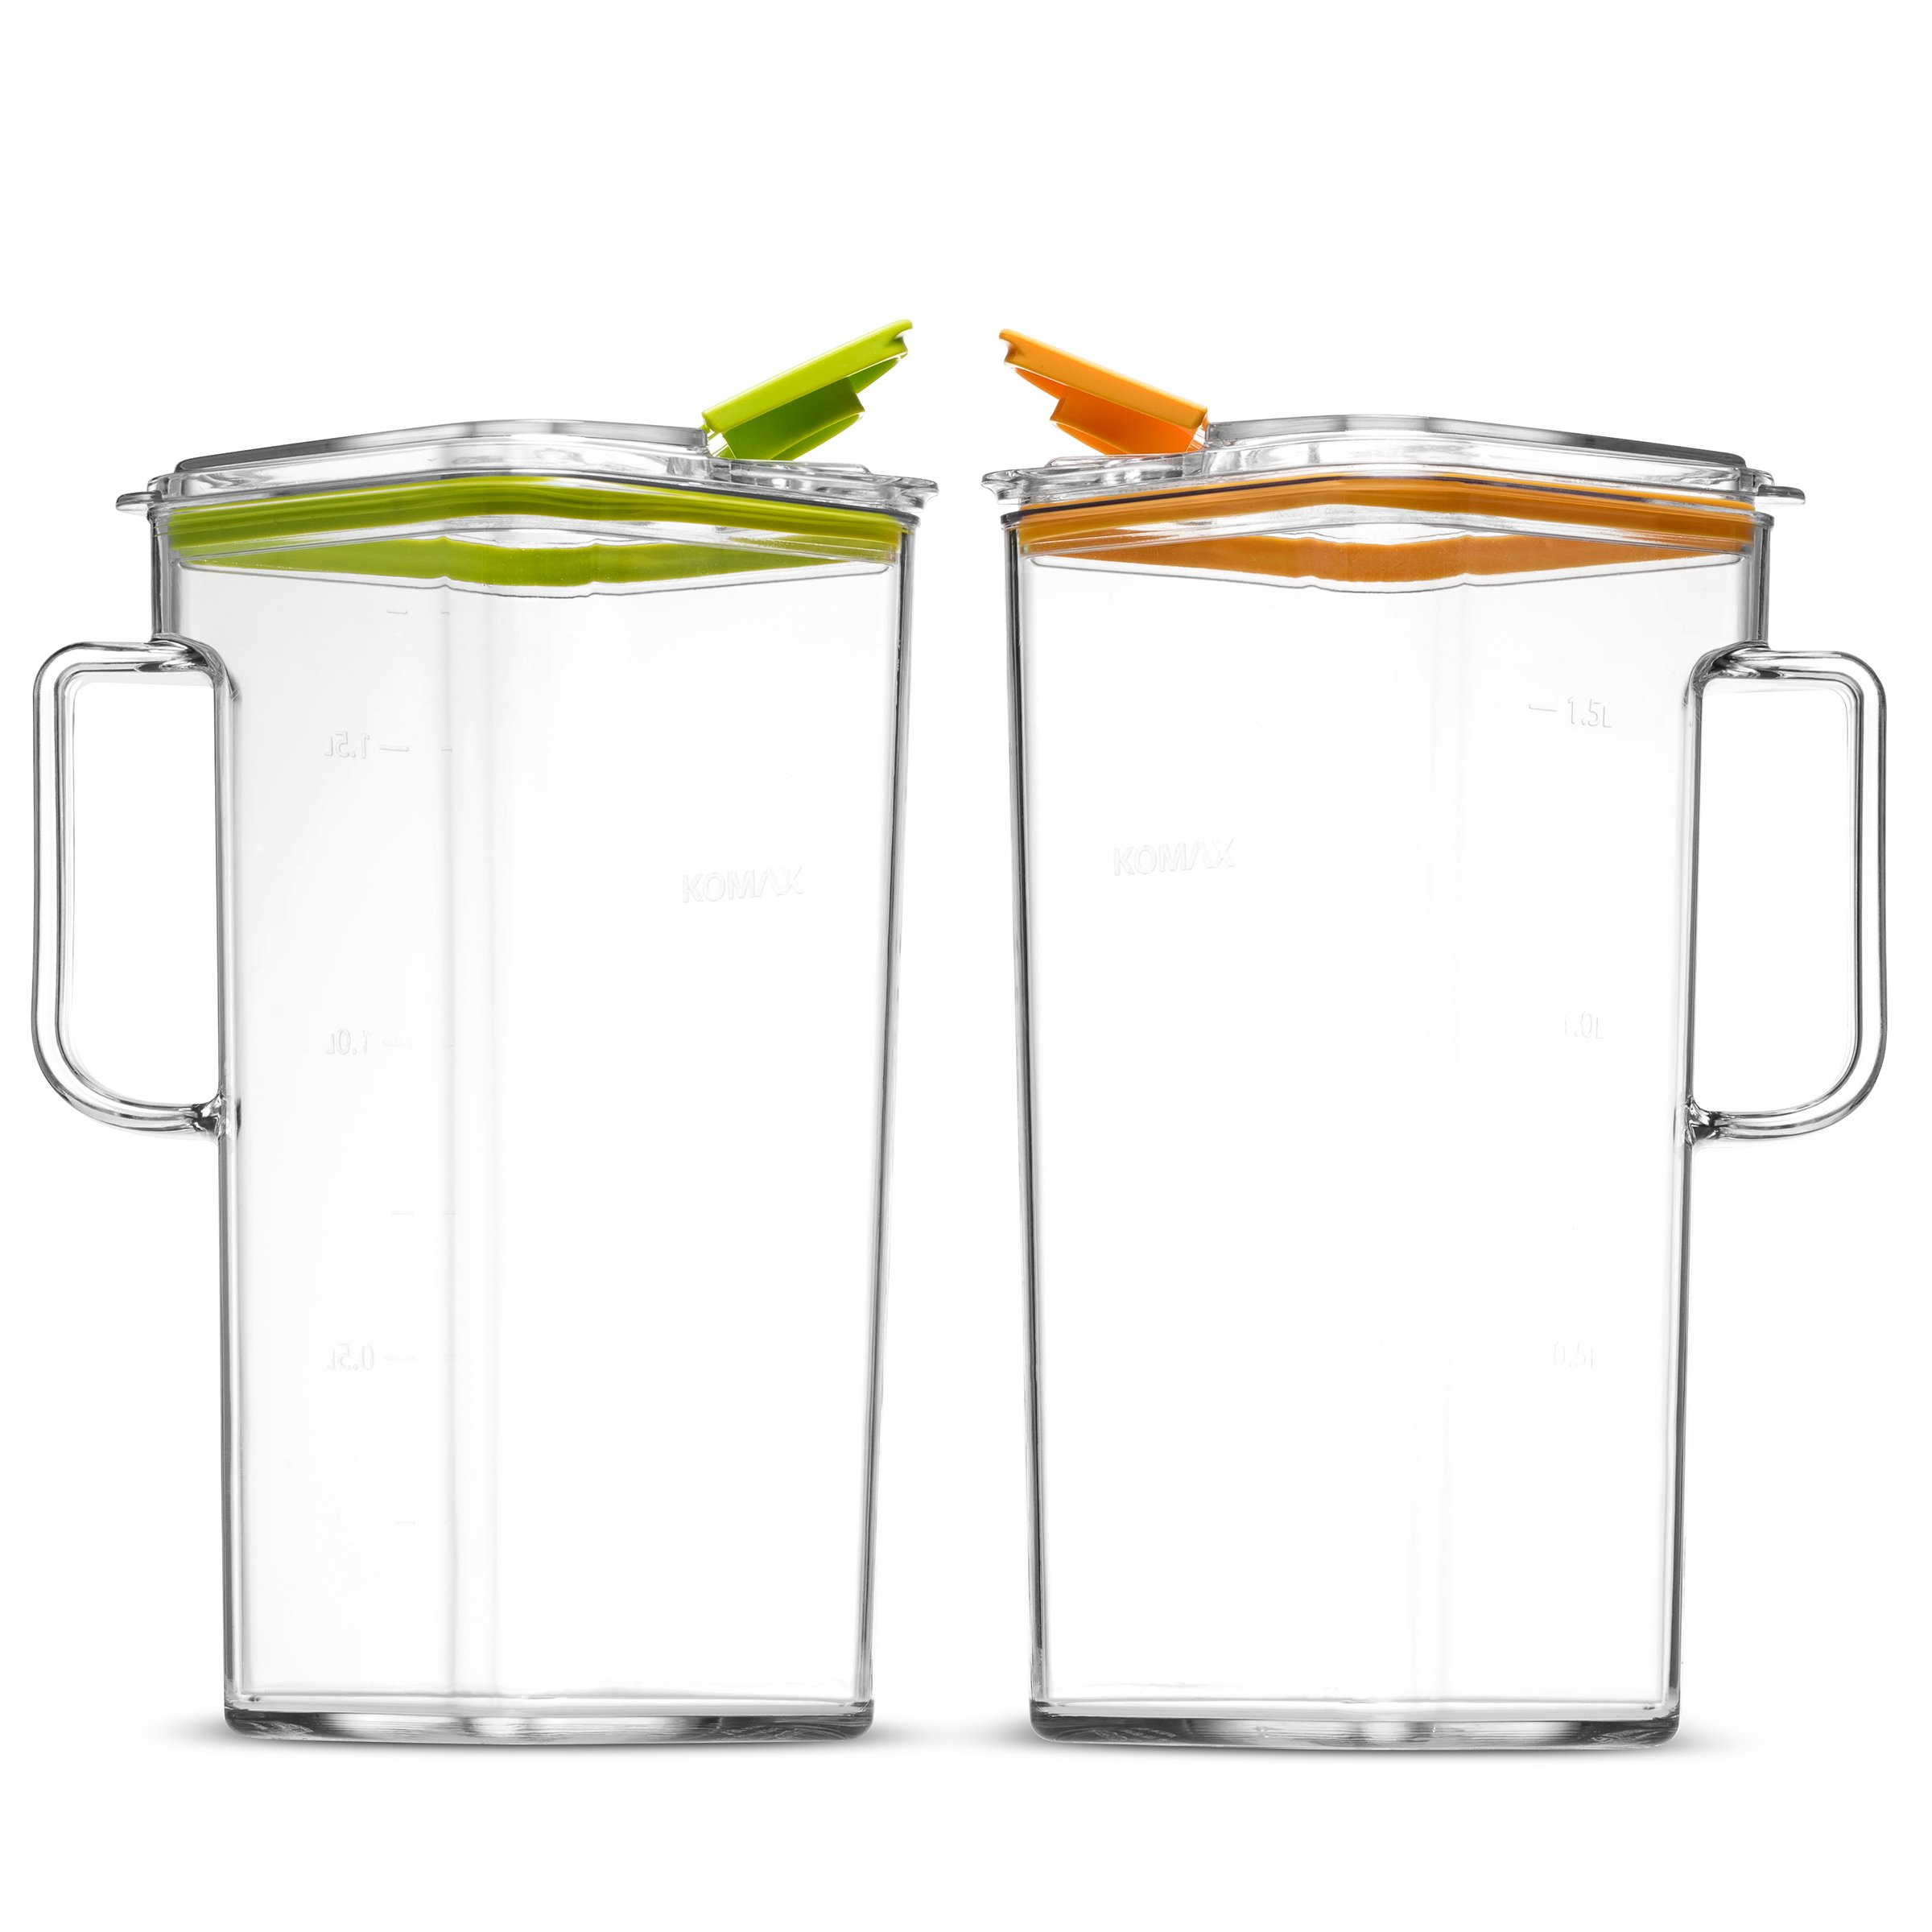 Komax Tritan Clear Large (2 quart) Pitcher With Orange Lid BPA-Free - Great for Iced tea & Water by Komax (Image #5)